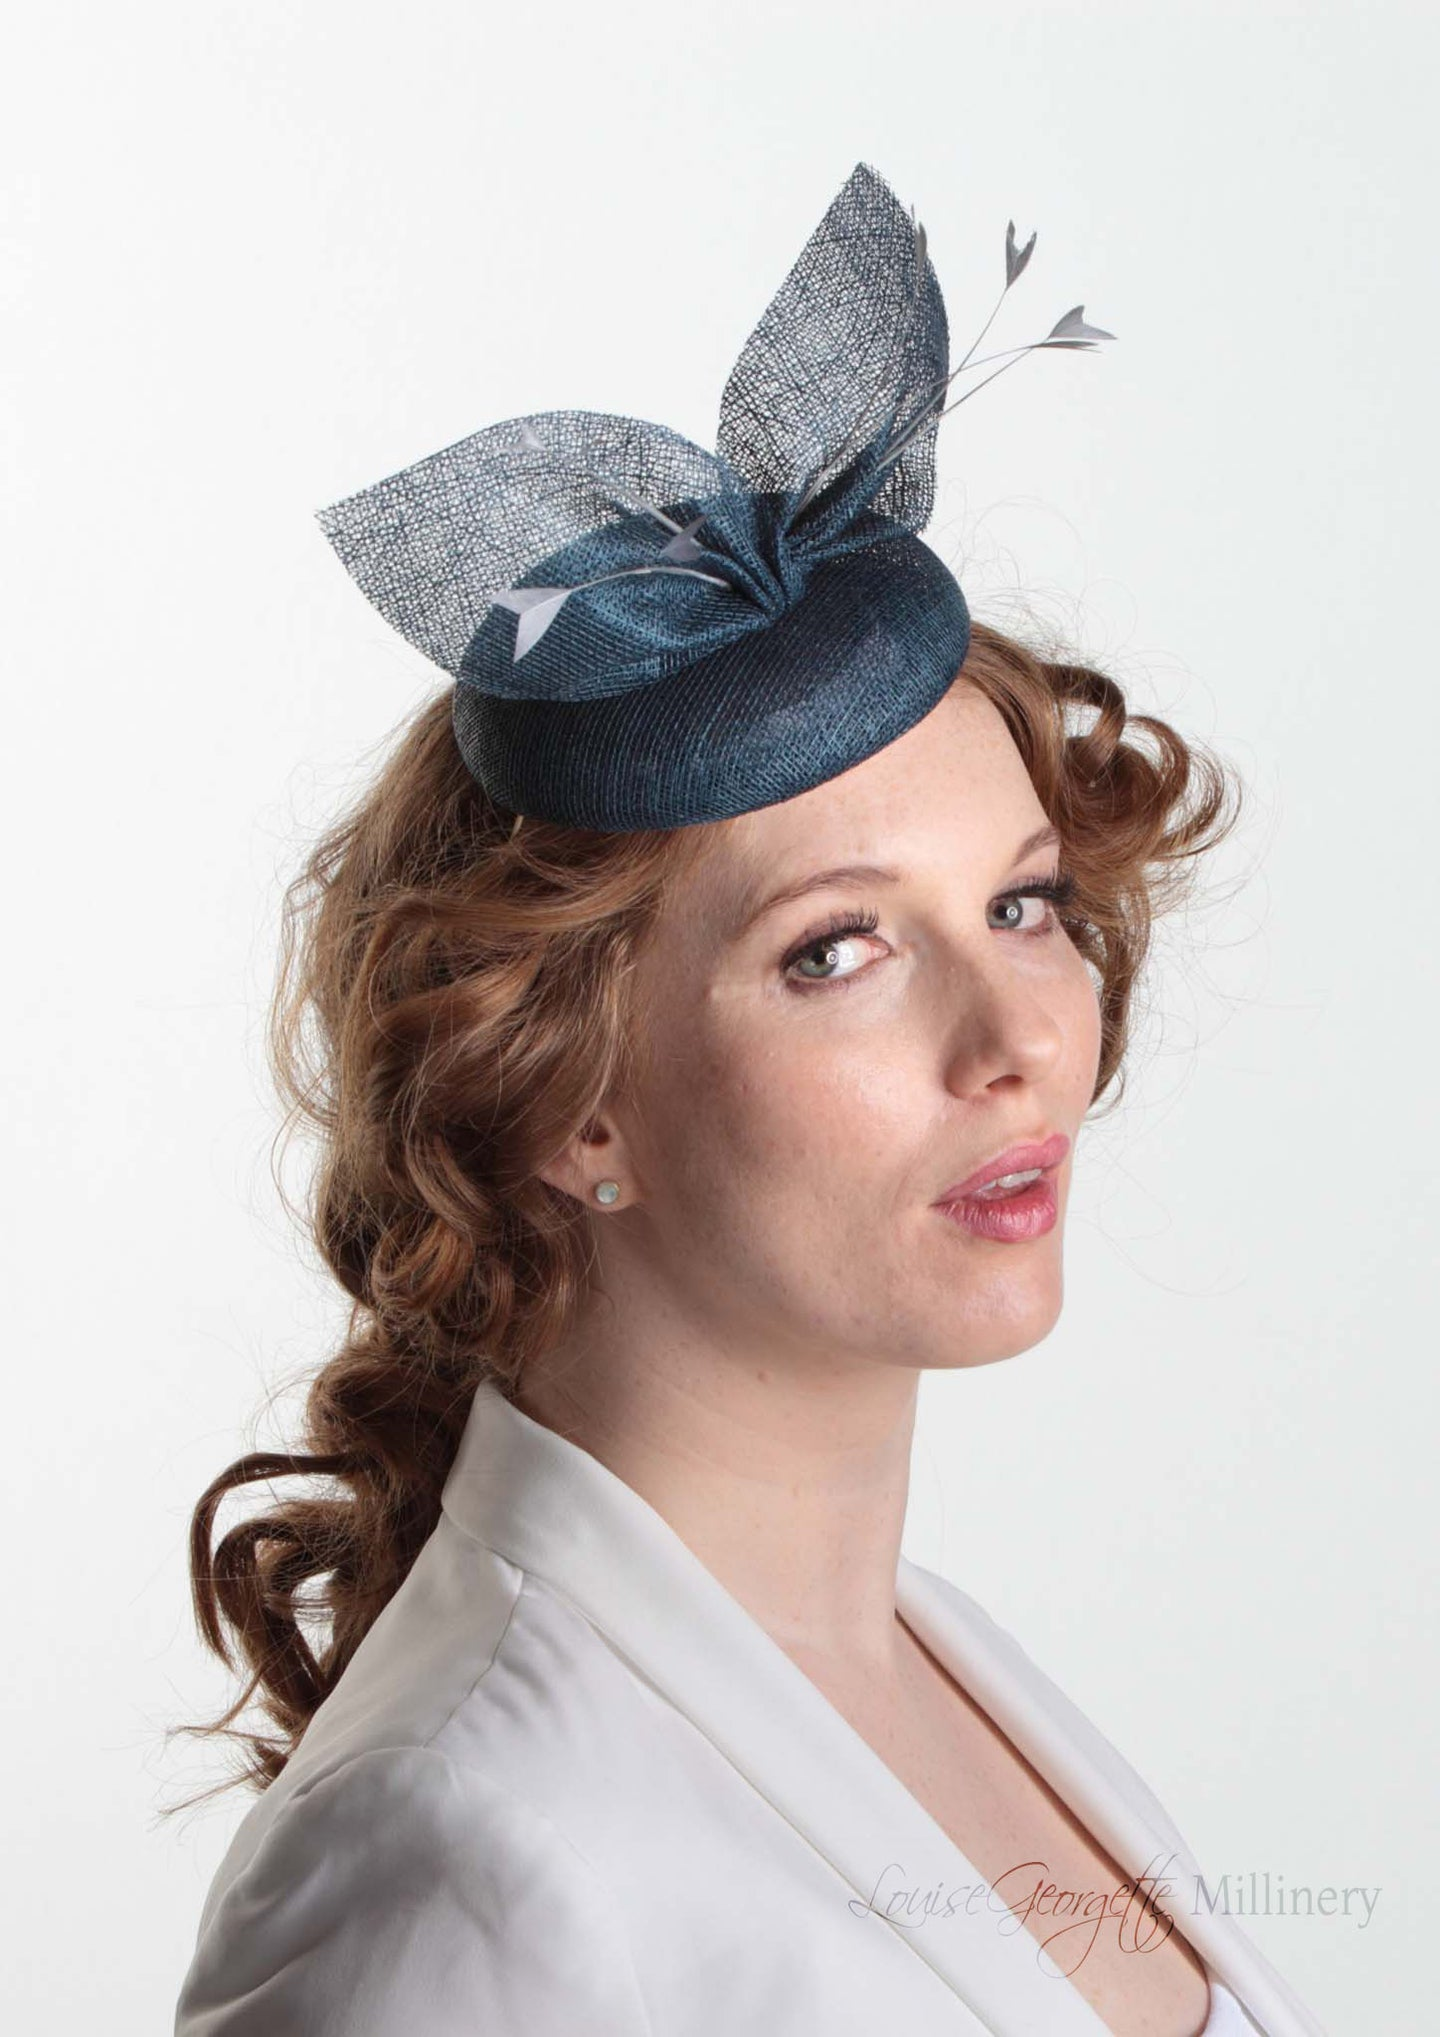 Royal Blue straw bow hat with feathers. Royal enclosure approved. Millinery handmade in London. Louise Georgette Millinery. Model side view.